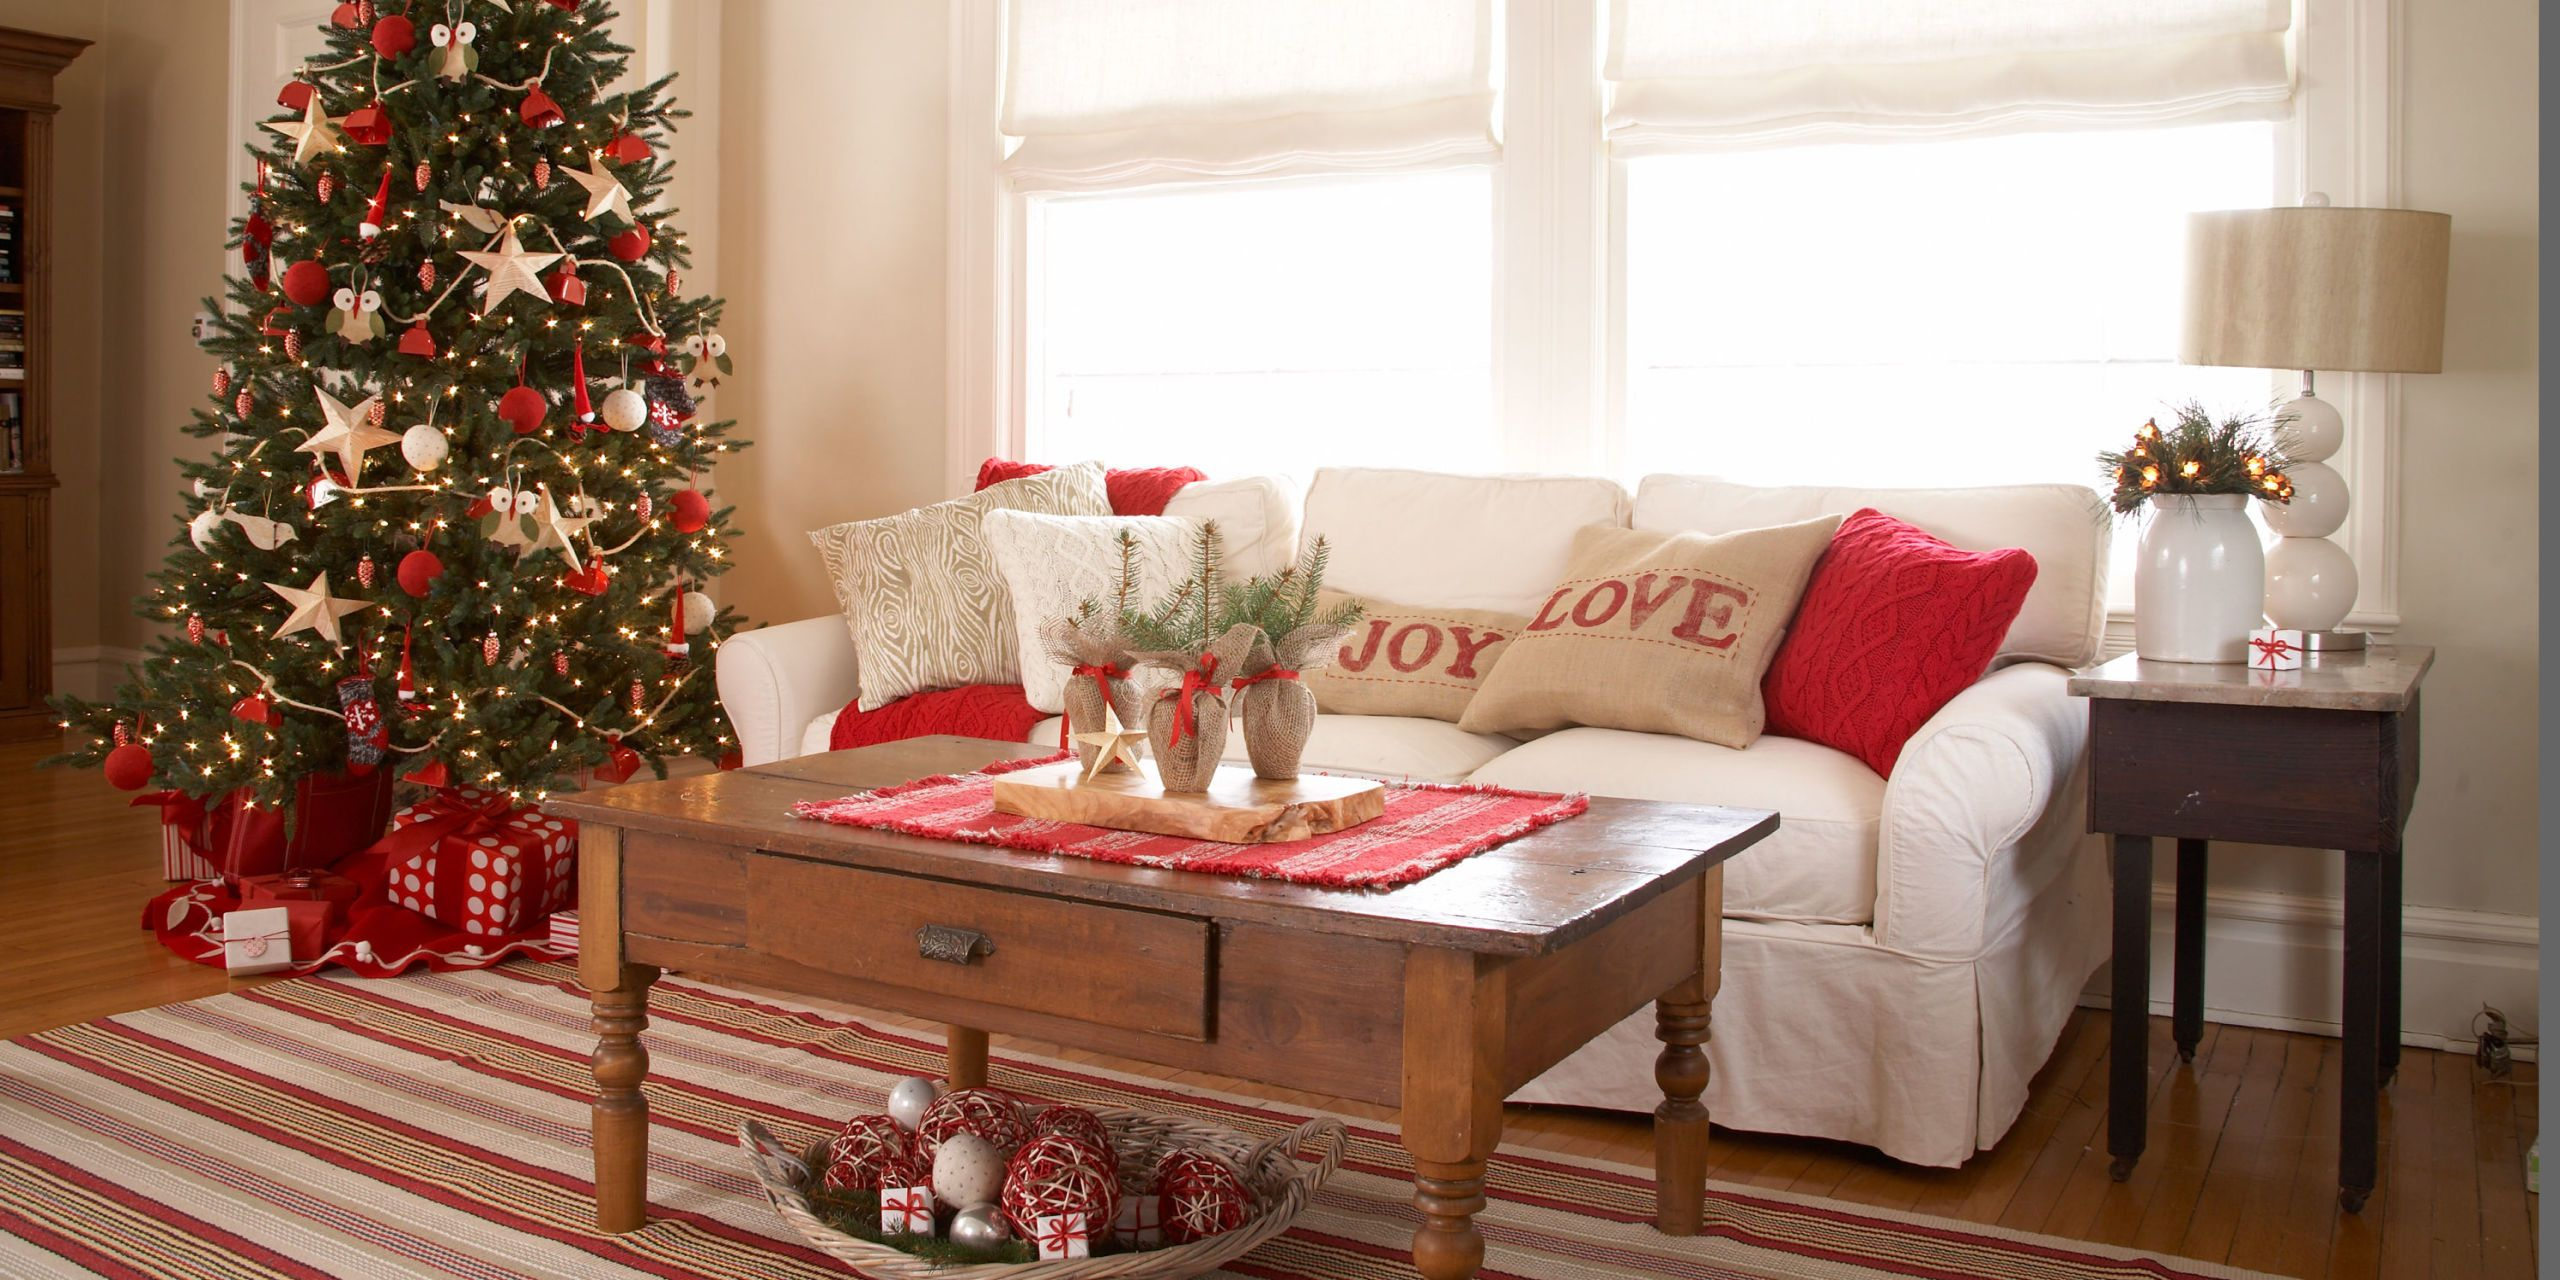 image : homemade christmas decorating ideas - www.pureclipart.com